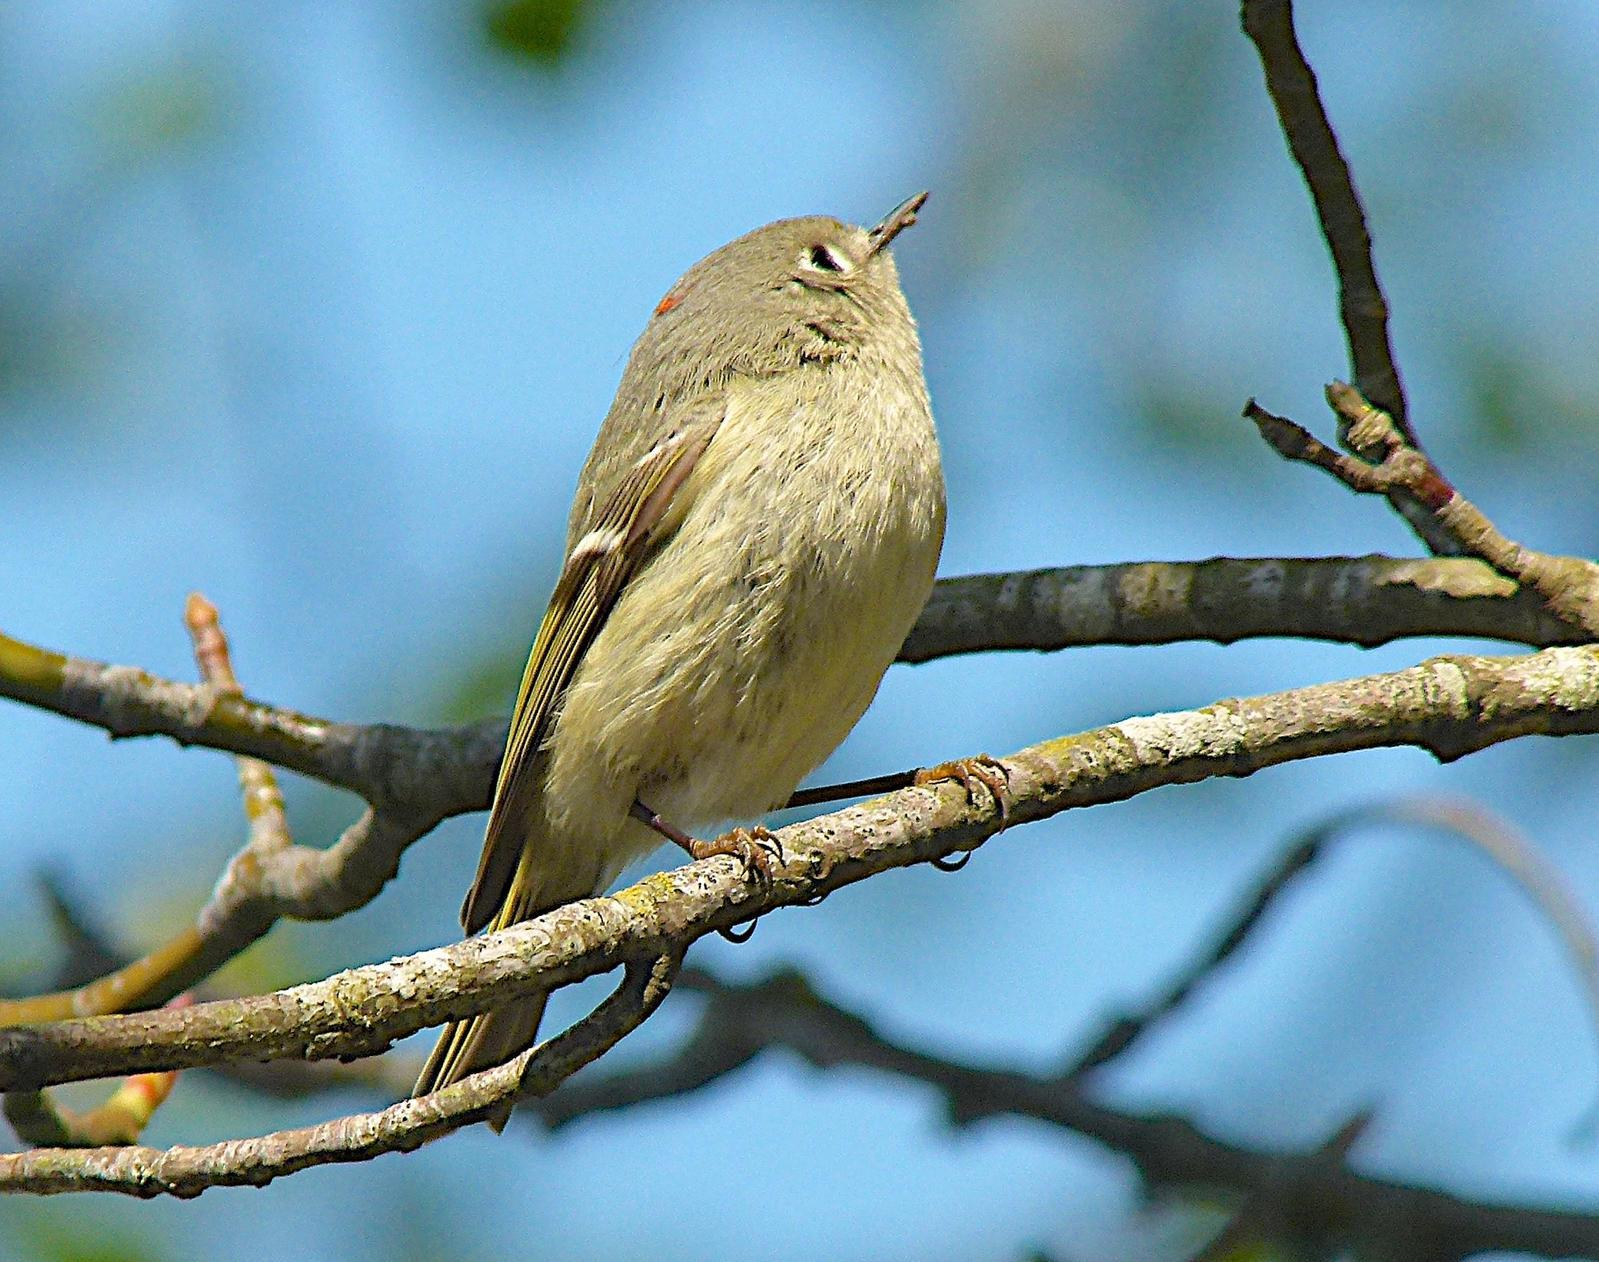 Ruby-crowned Kinglet Photo by Brian Avent